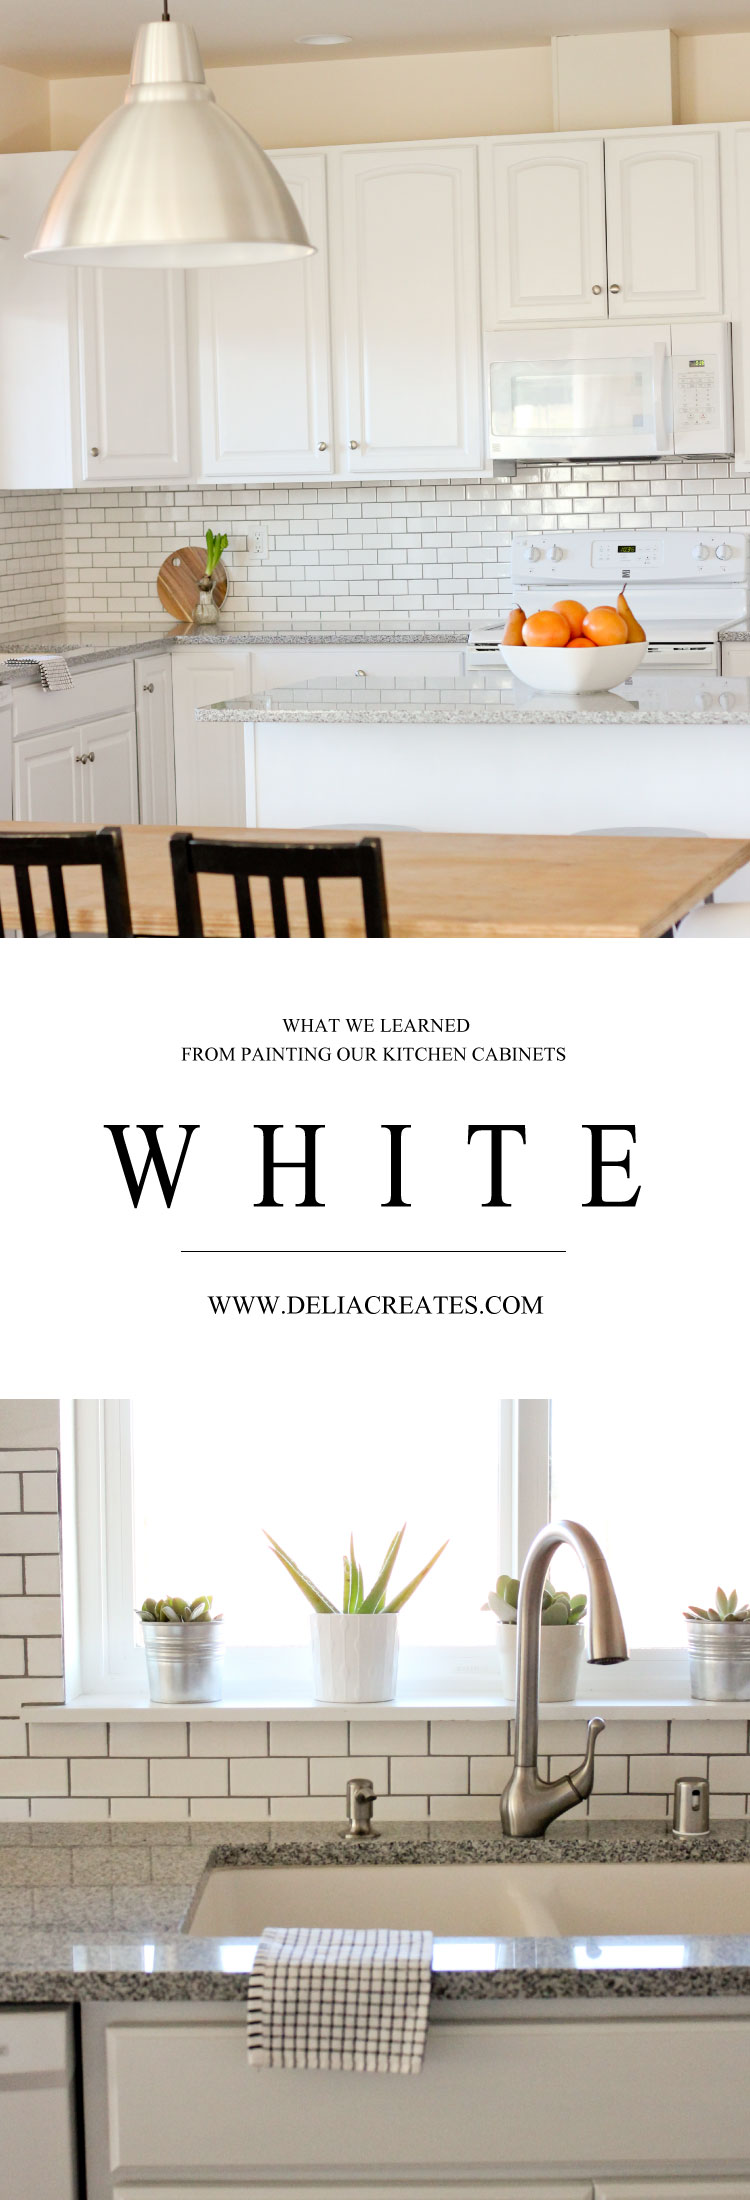 Kitchen Renovation Series: Painting Our Kitchen Cabinets White - with Chalk Paint! // www.deliacreates.com